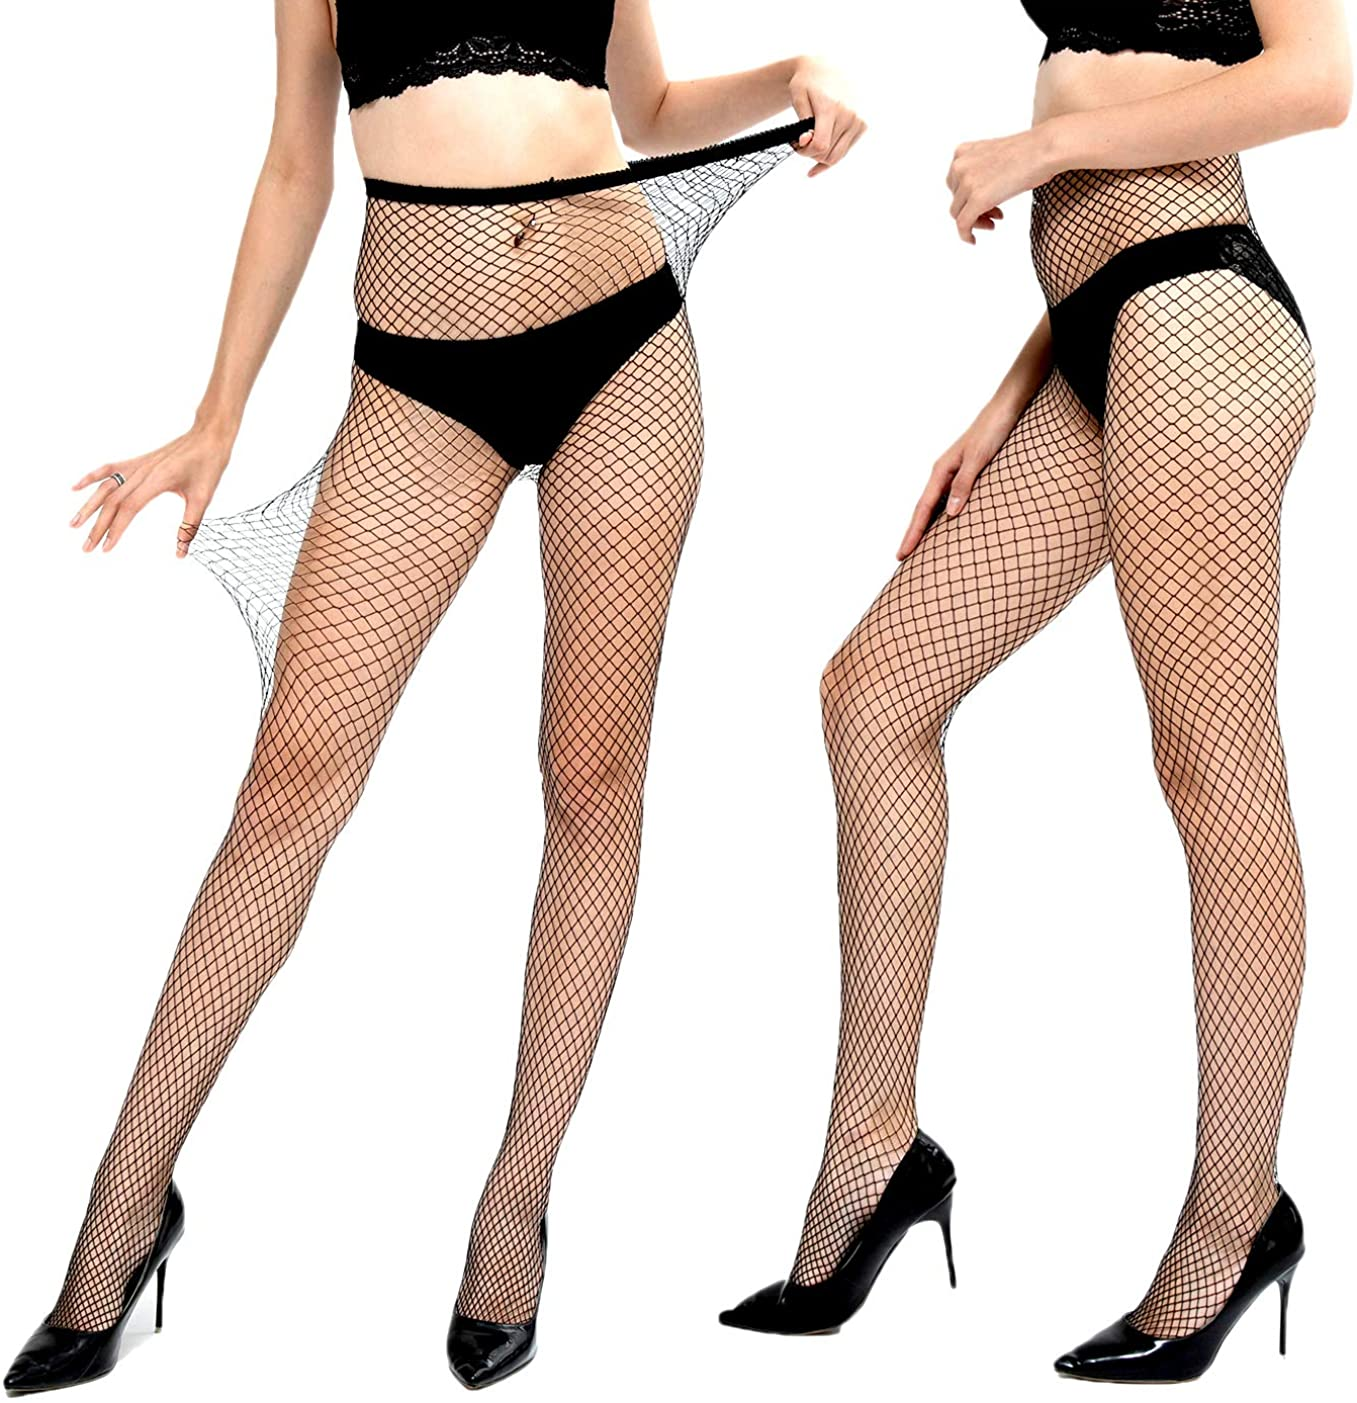 Women's 2 Pairs Fishnet Stockings Mesh Hollow Out Fishnet Pantyhose Tights of MISSGGBOND